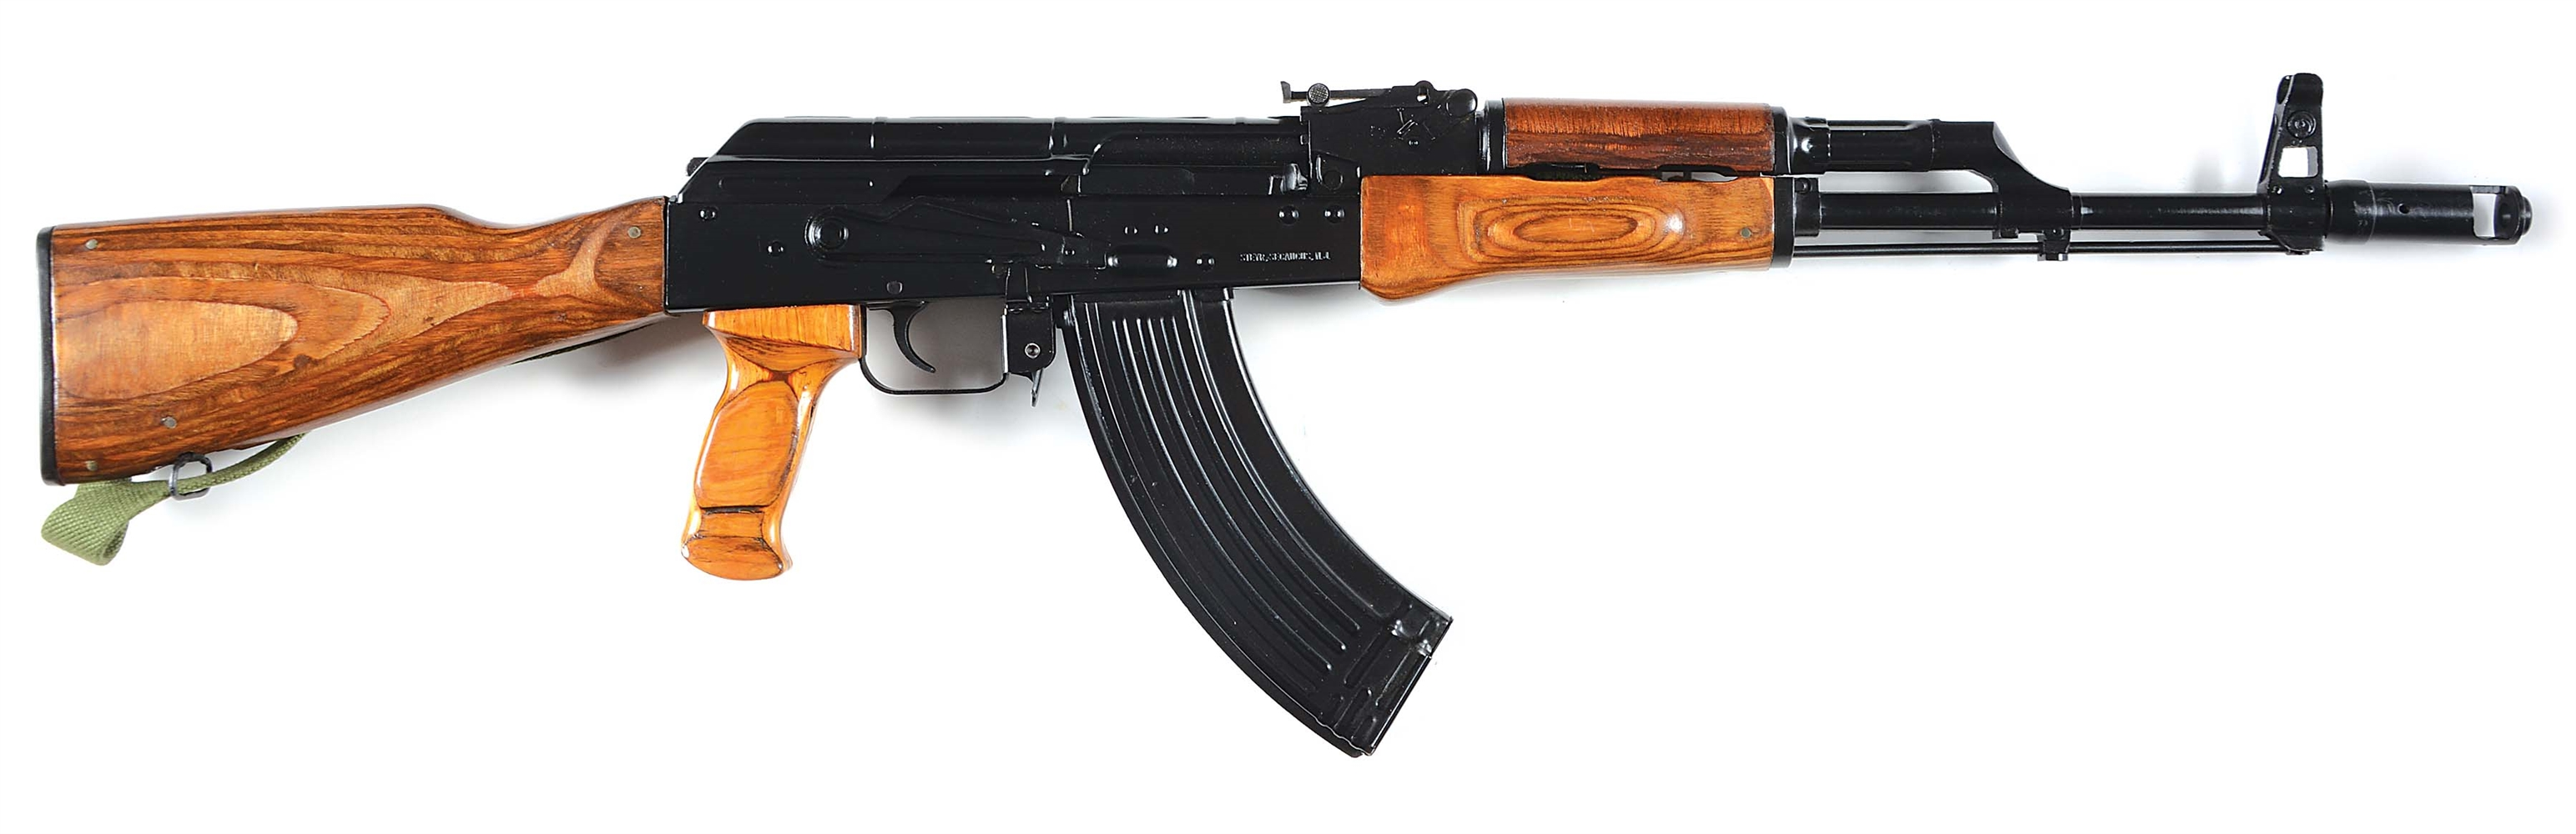 (M) Maadi AKM Semi-Automatic Rifle